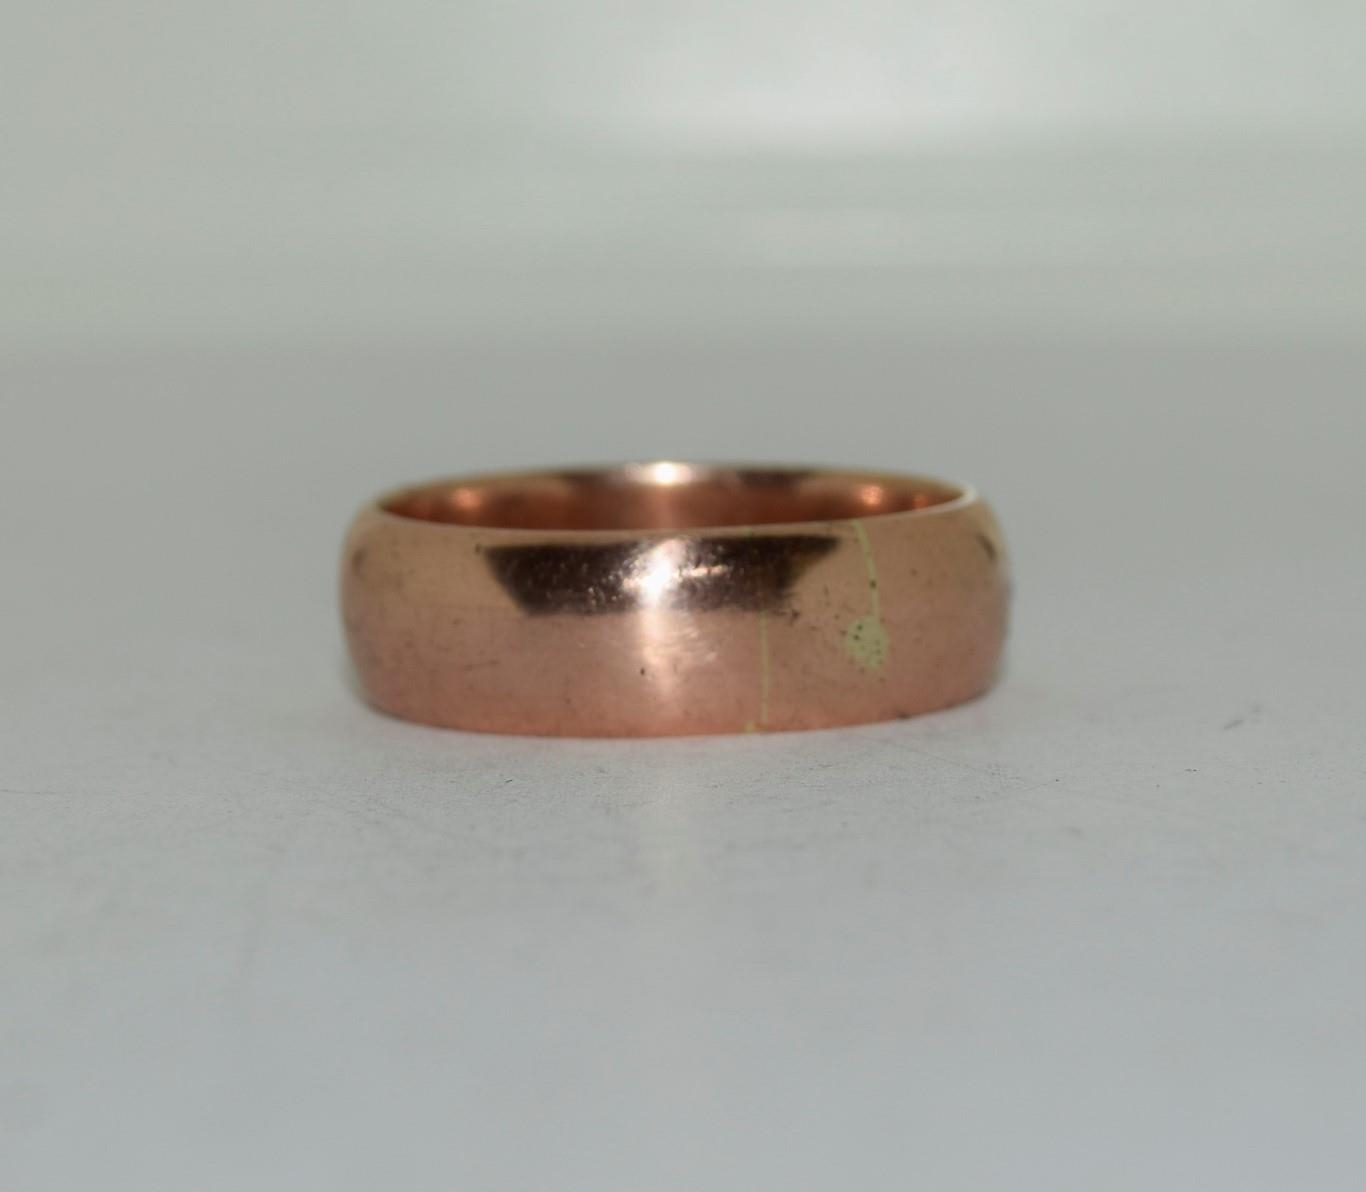 9ct gold mans wedding band size X 8.7gm - Image 6 of 6